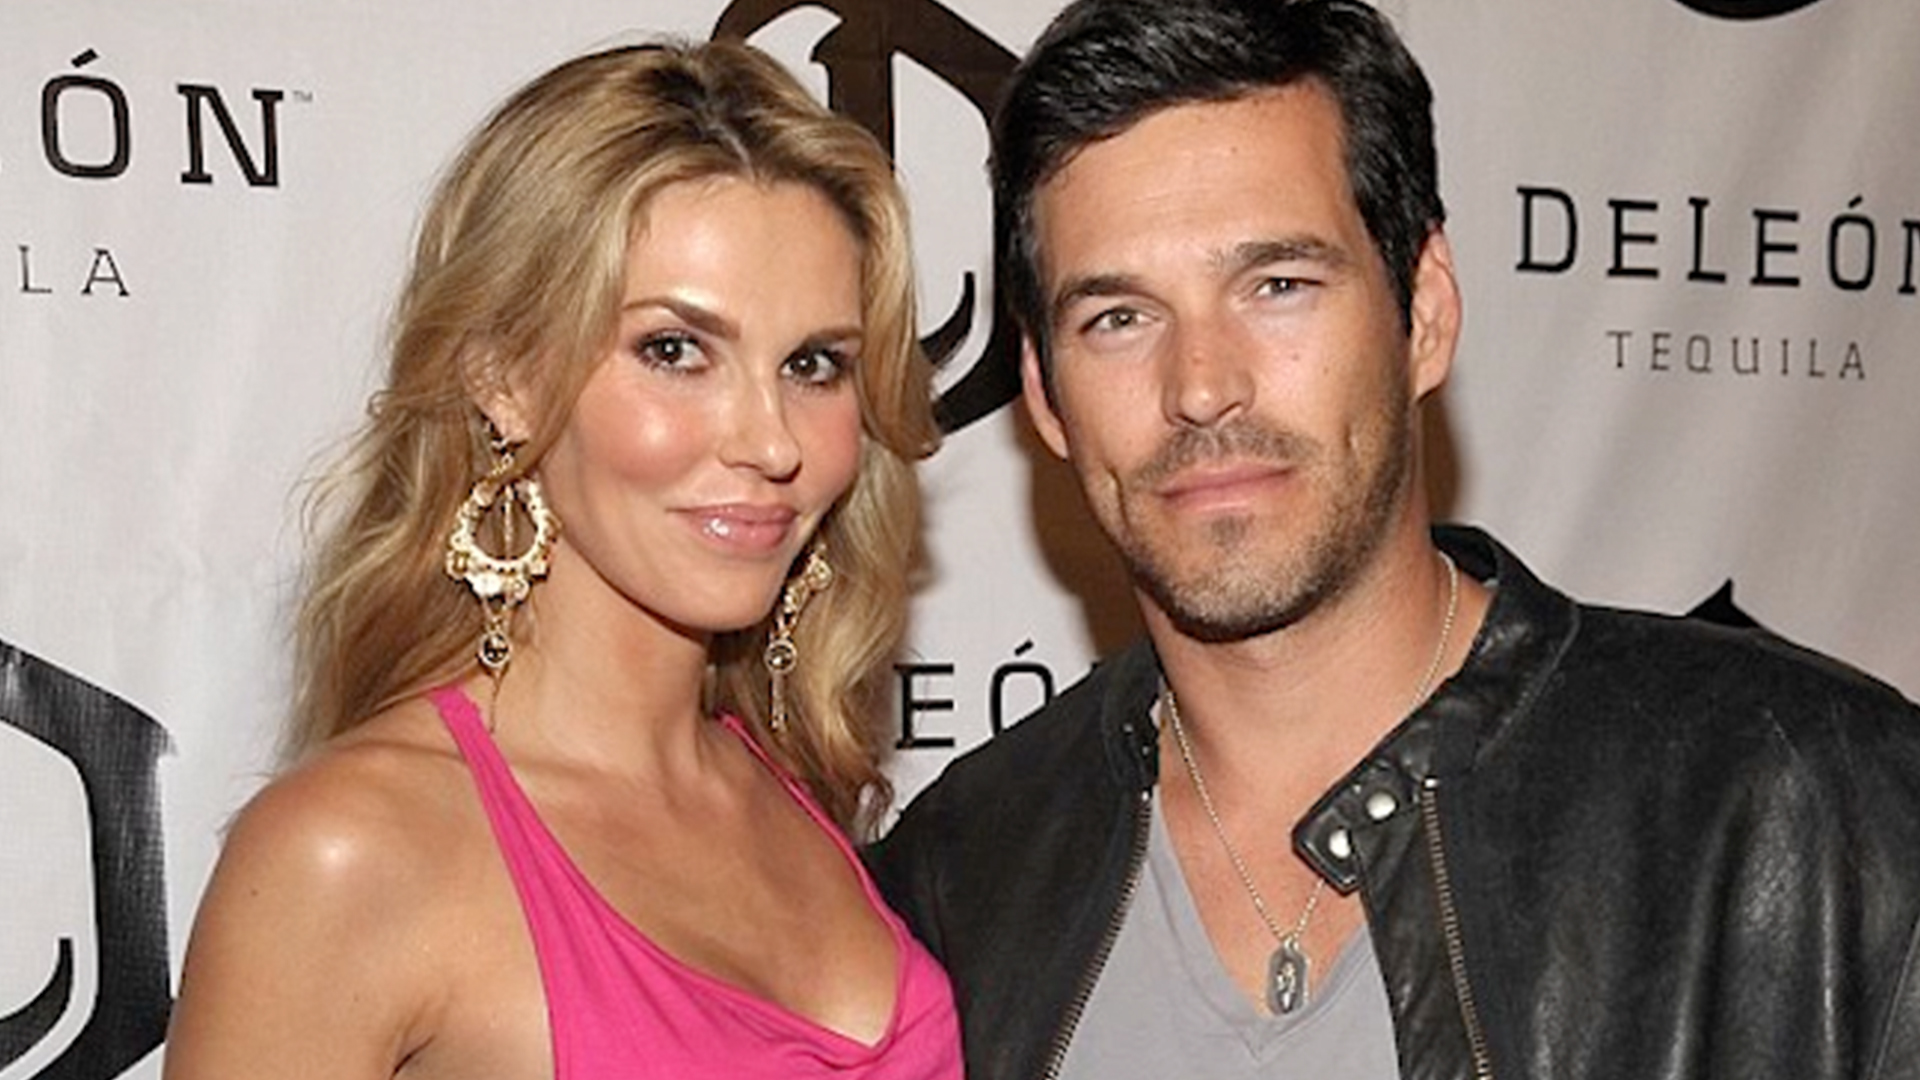 Pictures Brandi Glanville nude (46 photo), Pussy, Paparazzi, Boobs, cameltoe 2006